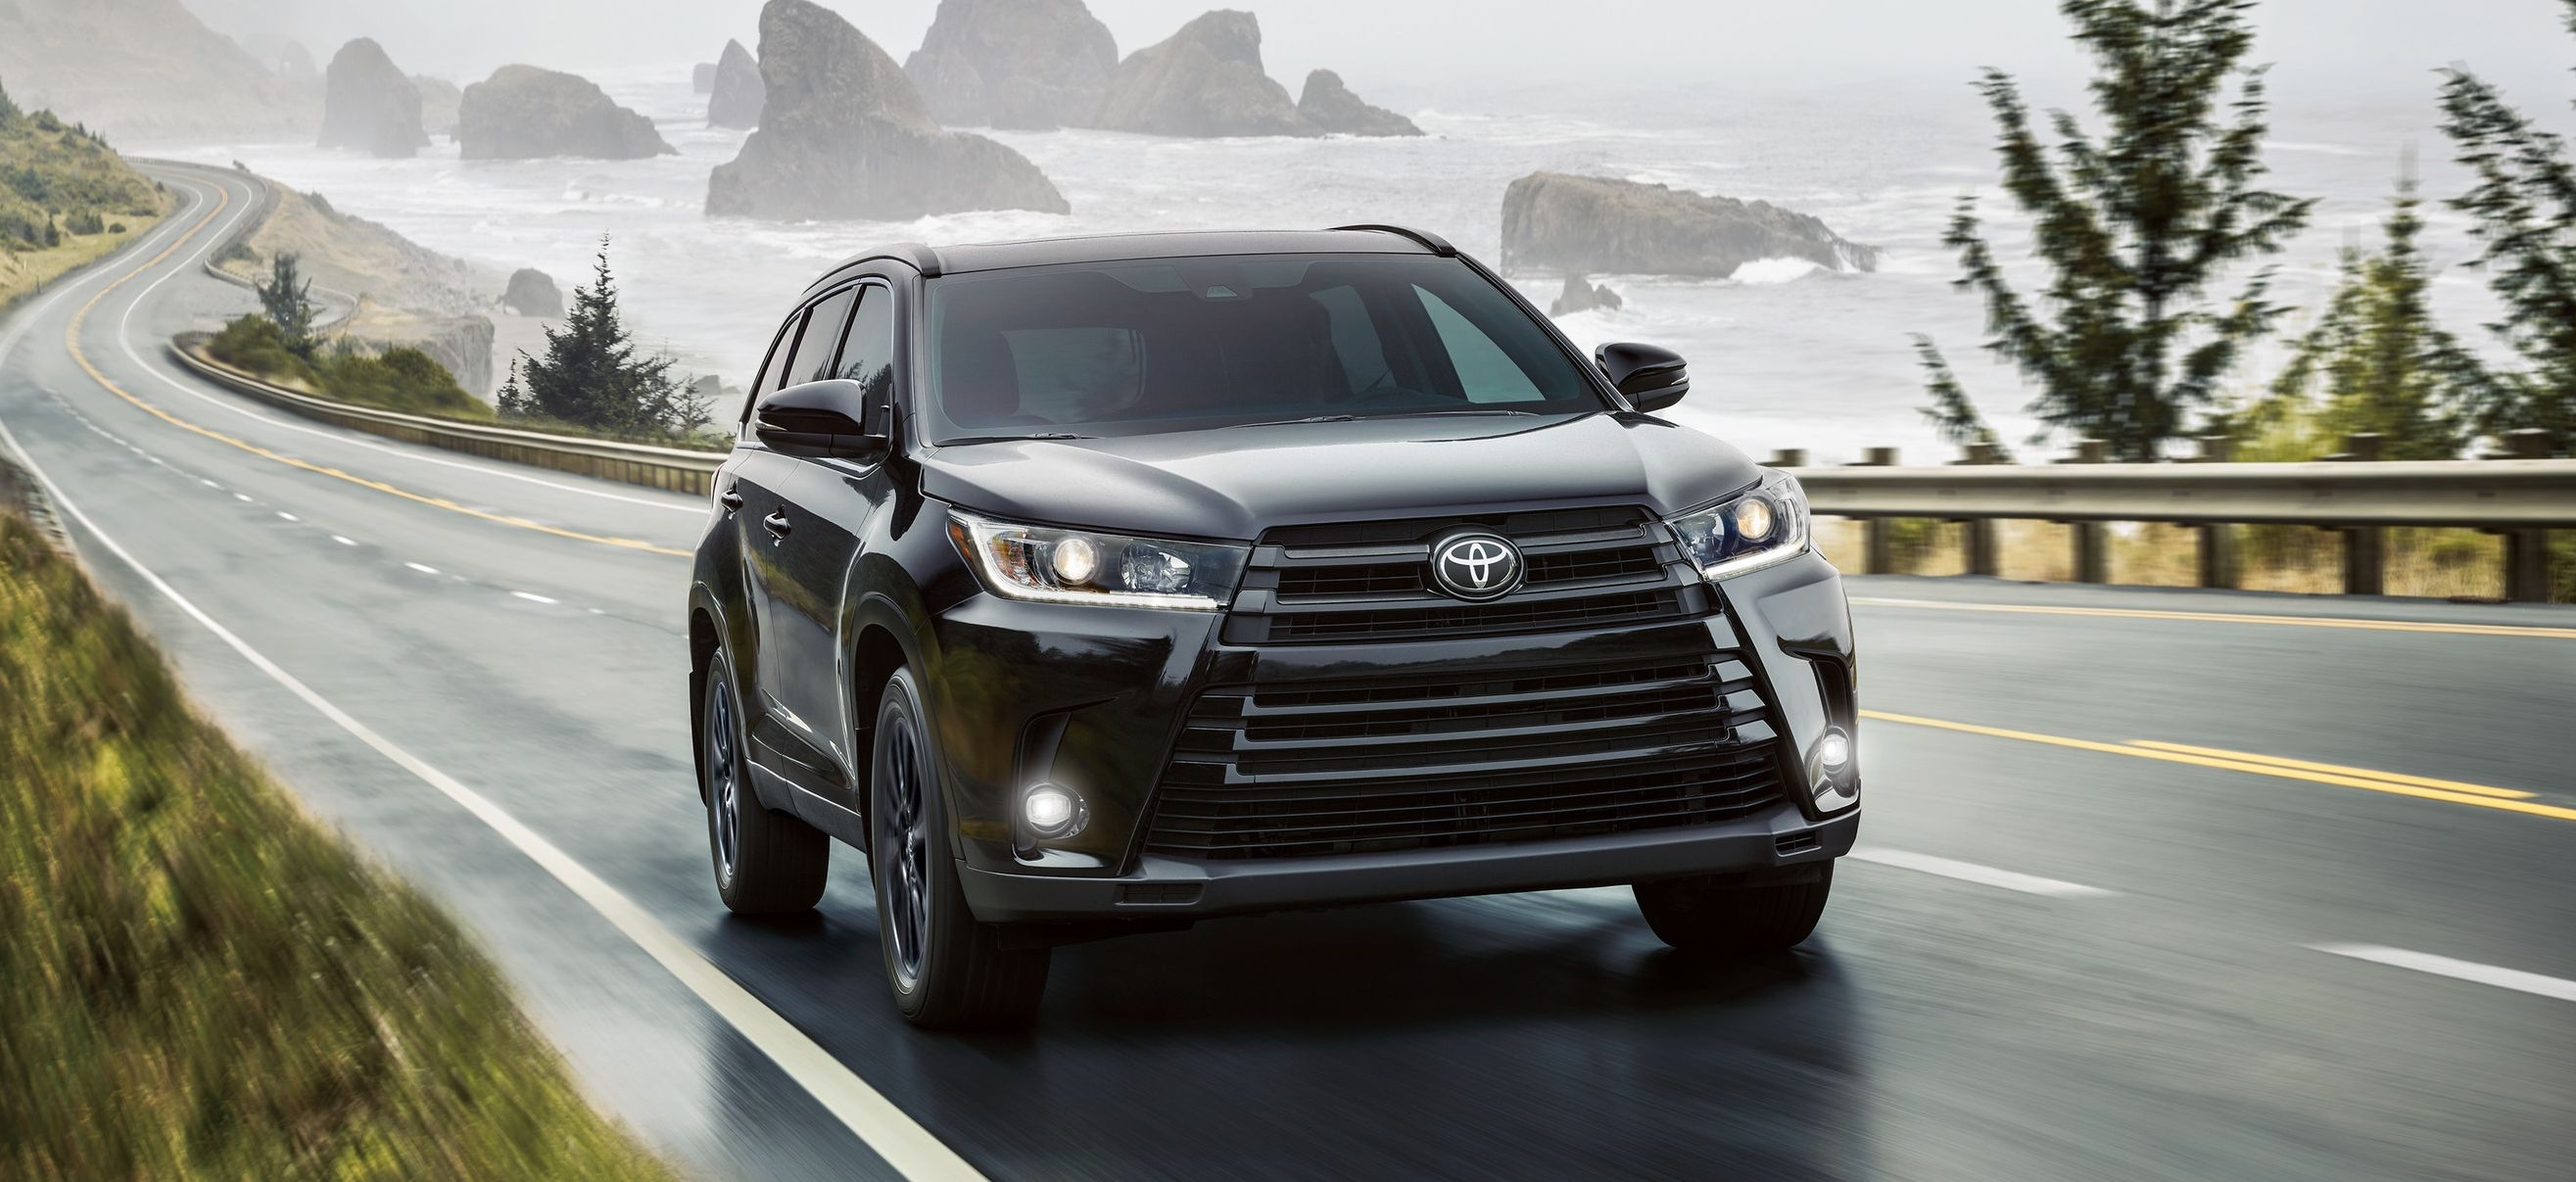 2019 Toyota Highlander for Sale near Cleveland, OH